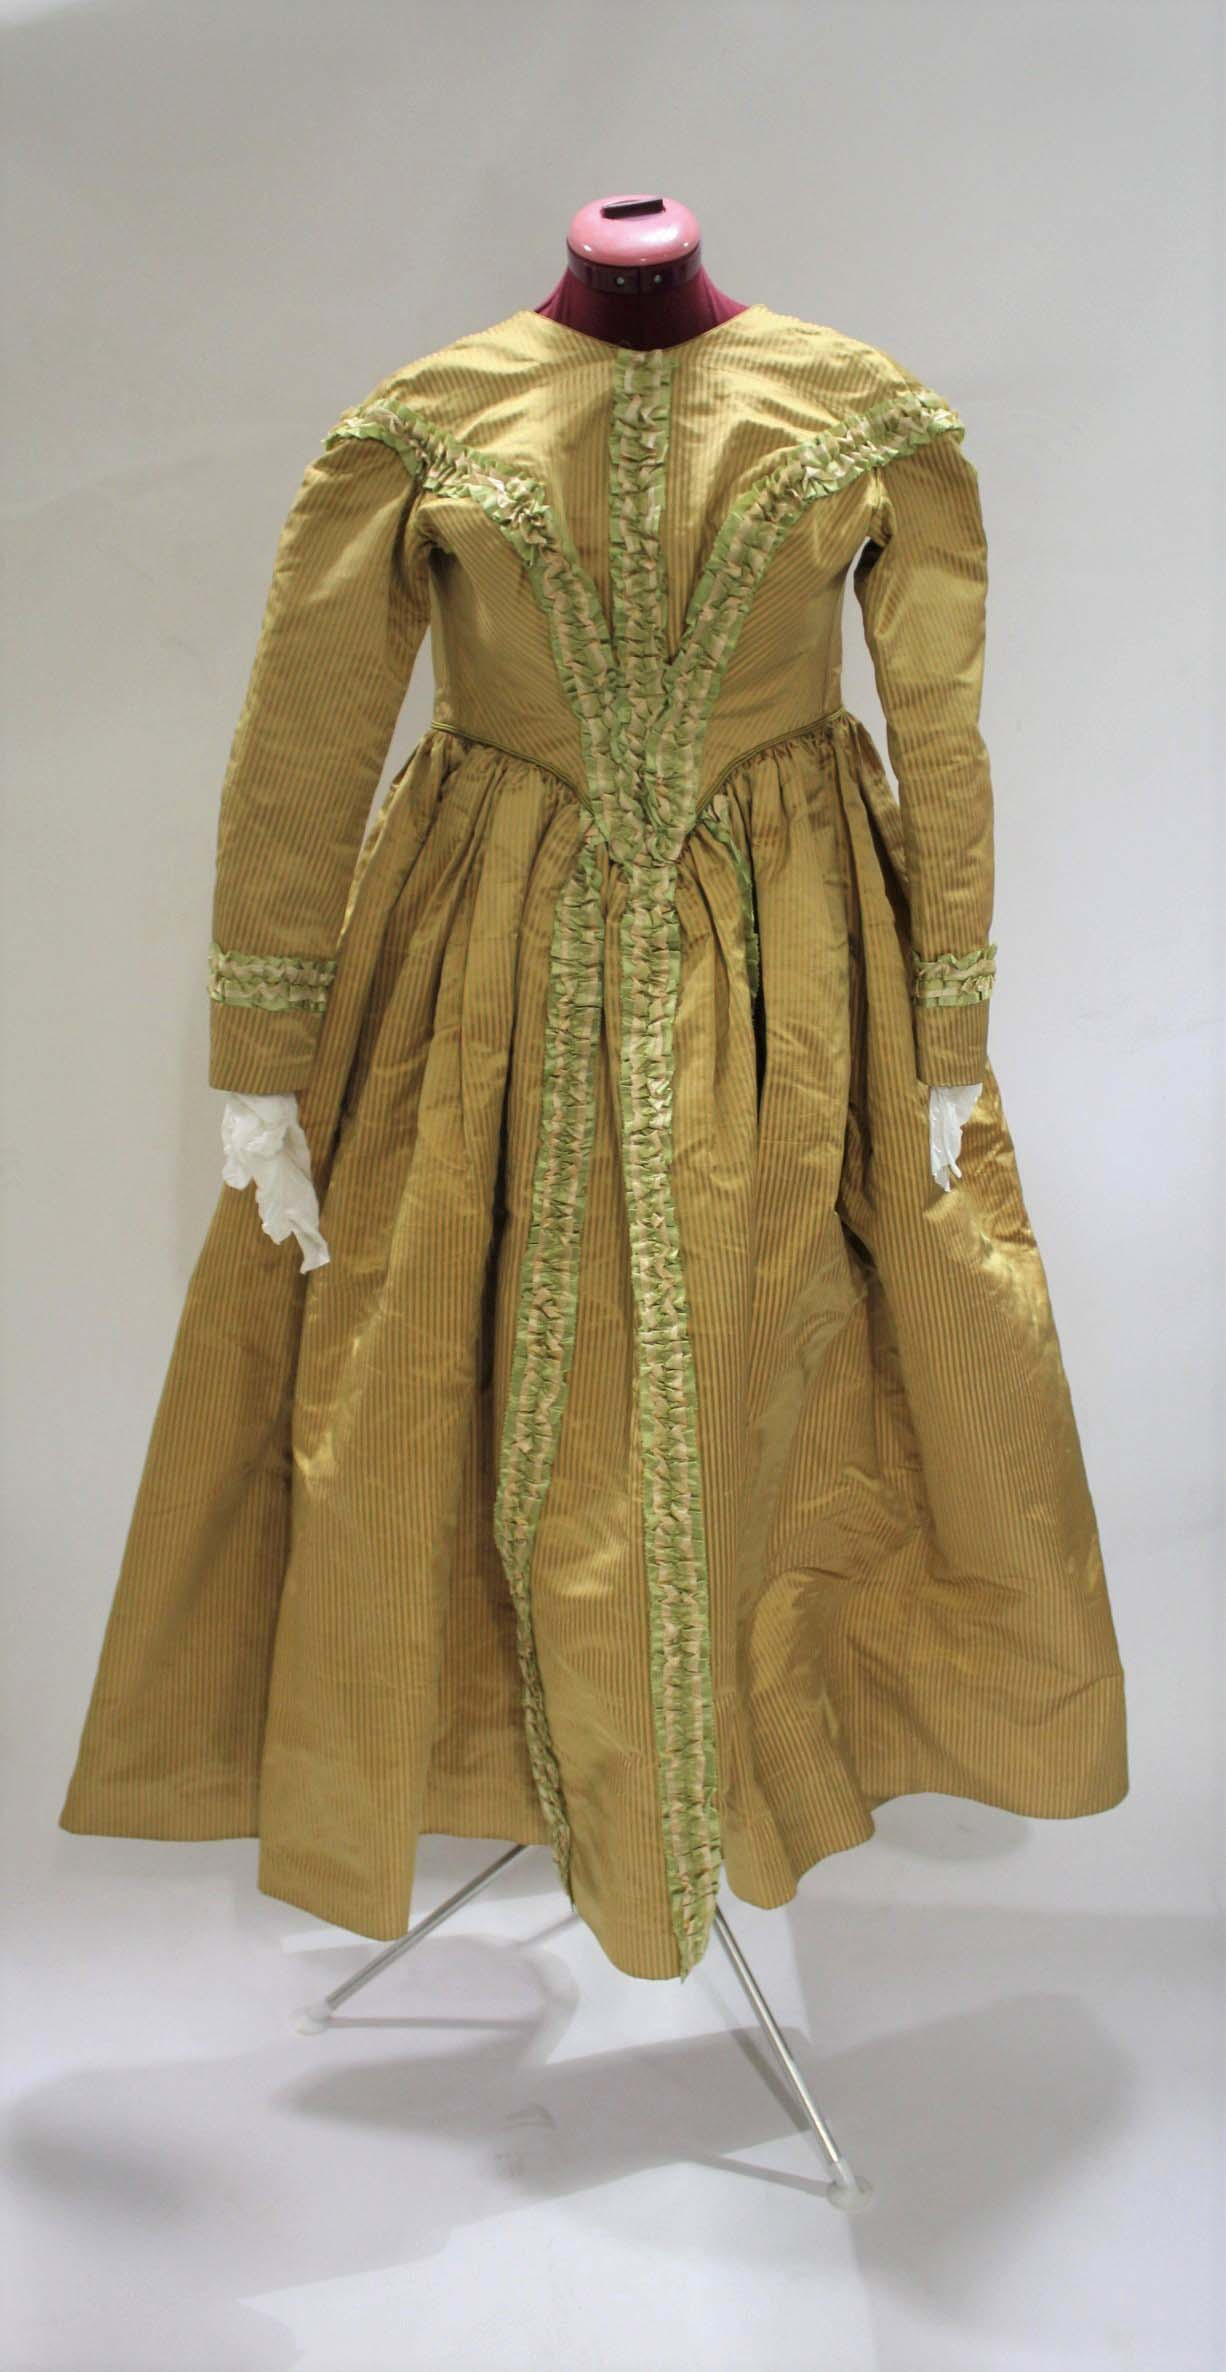 Lot 1866 - 19THC SILK LADIES DRESS a mid 19thc apricot and olive green striped silk dress, decorated with